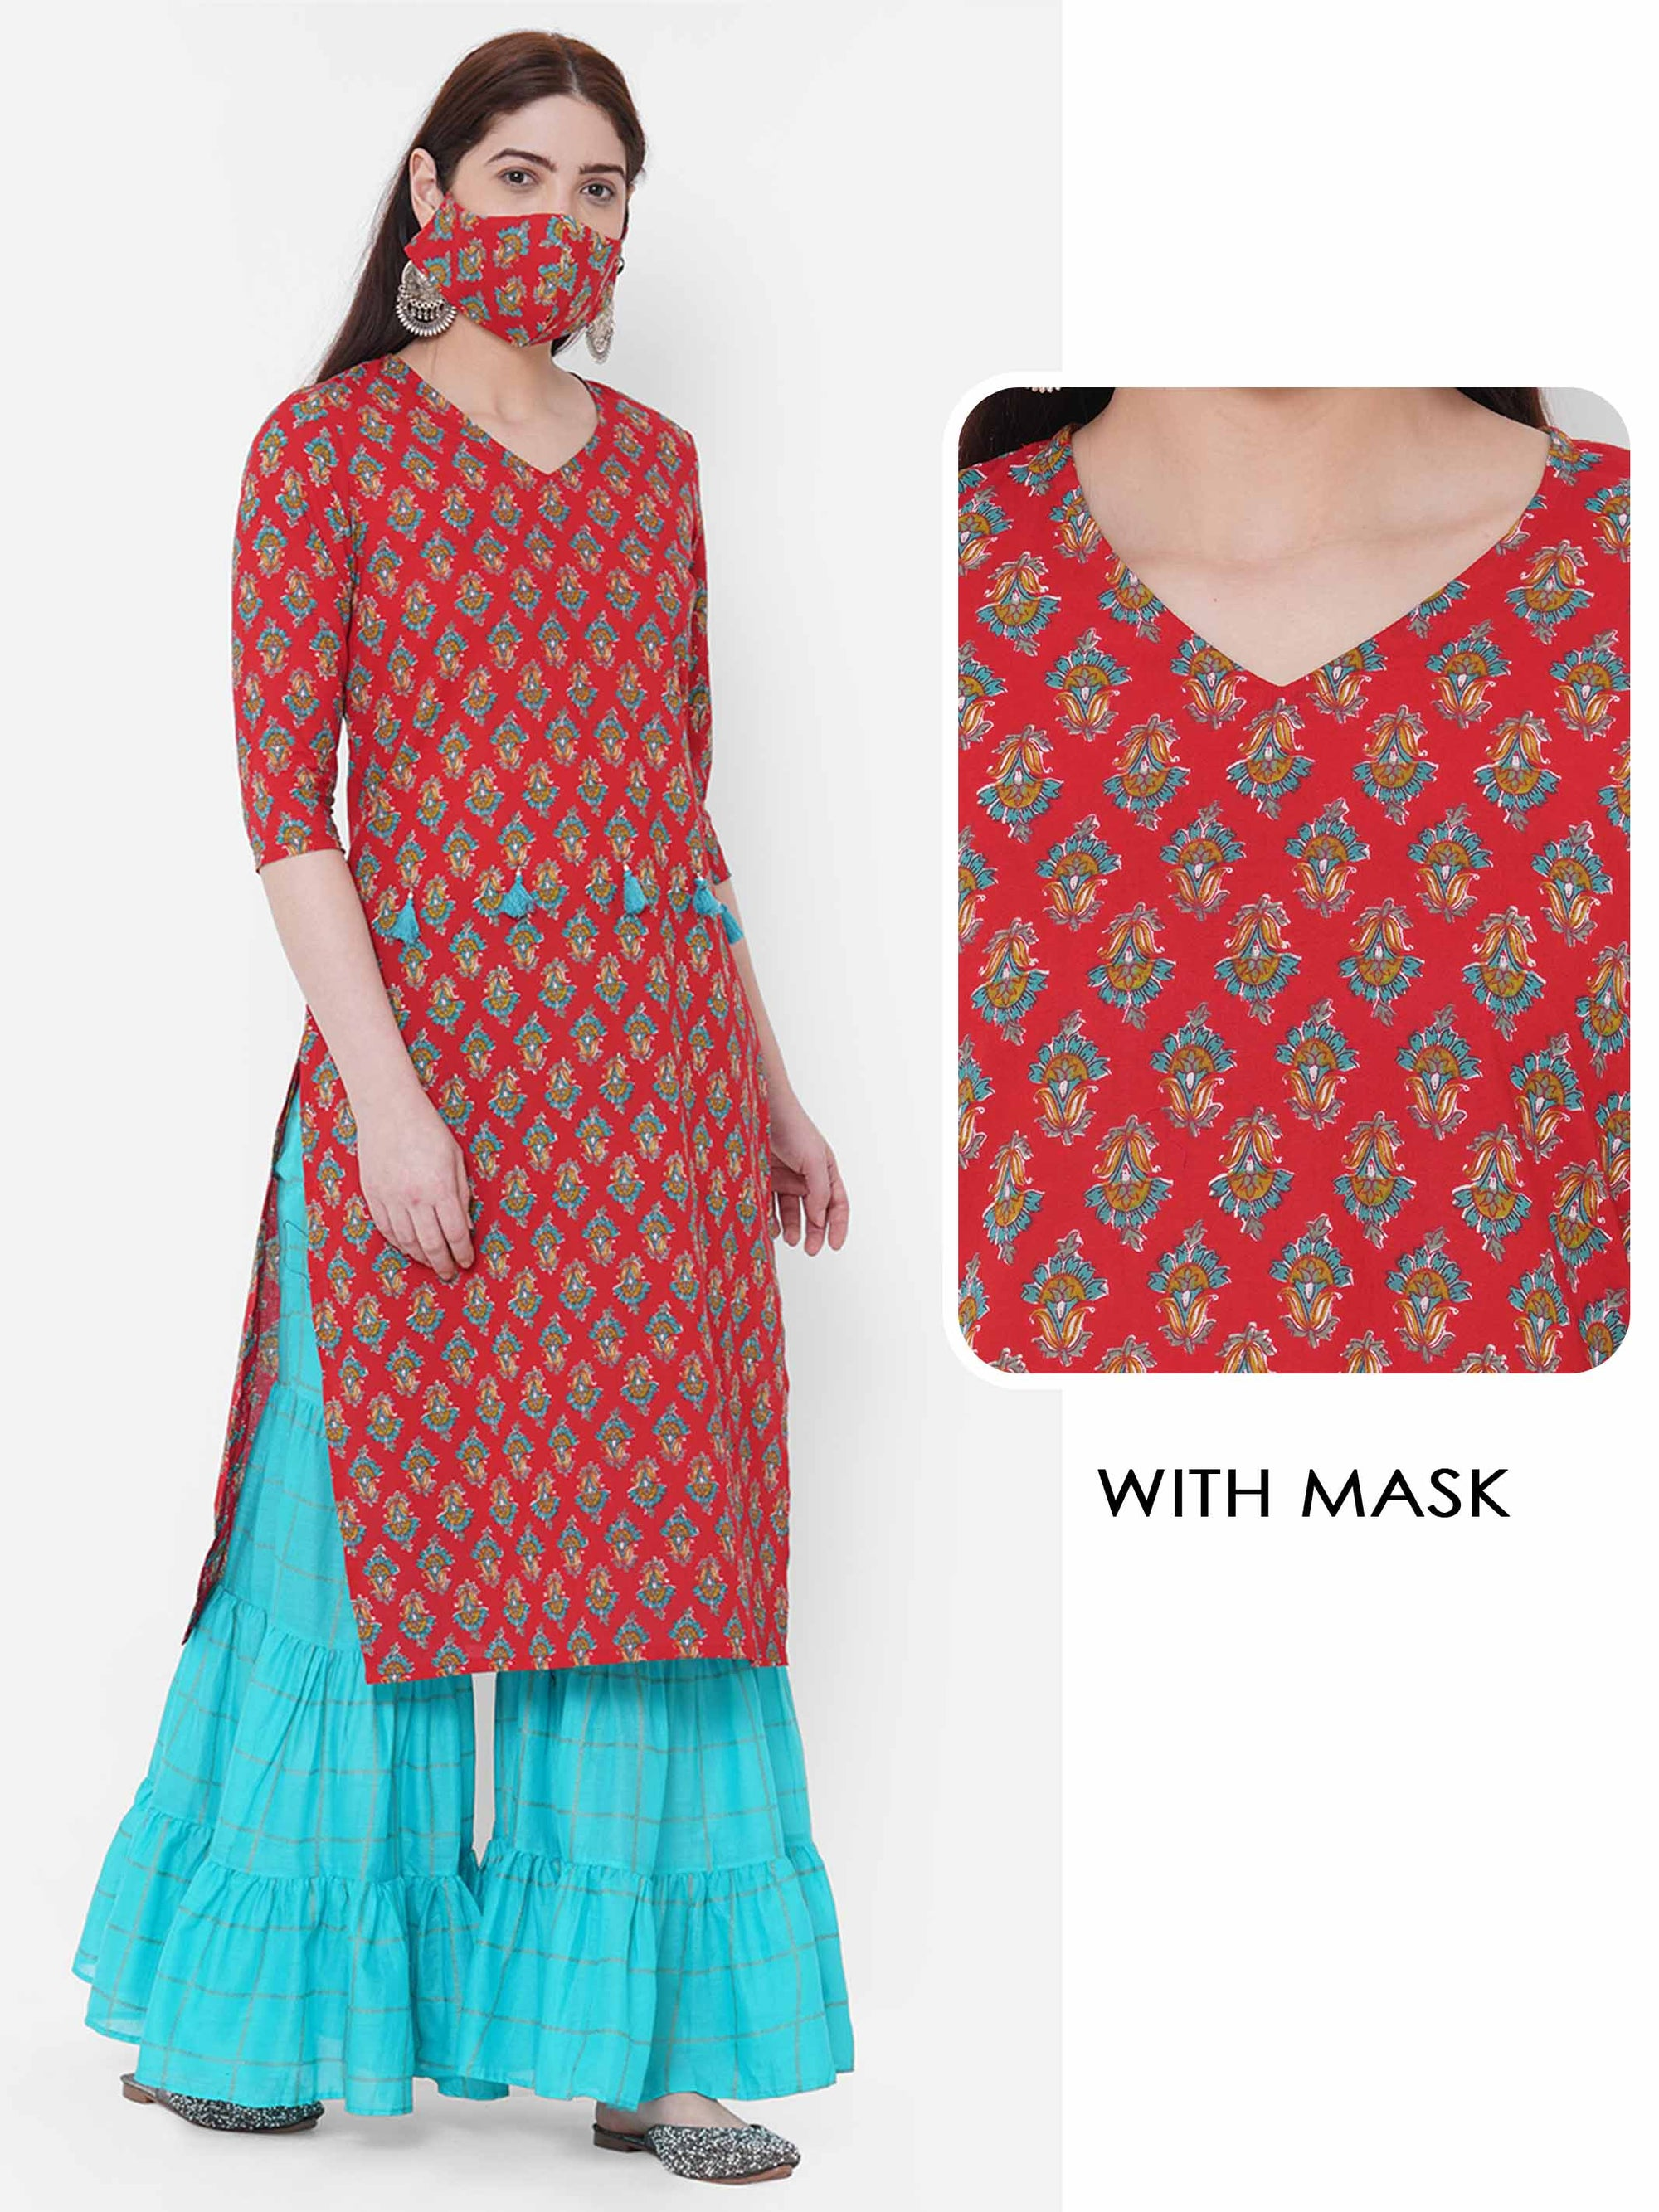 Floral block Printed Kurta with 2-Ply Mask - Red